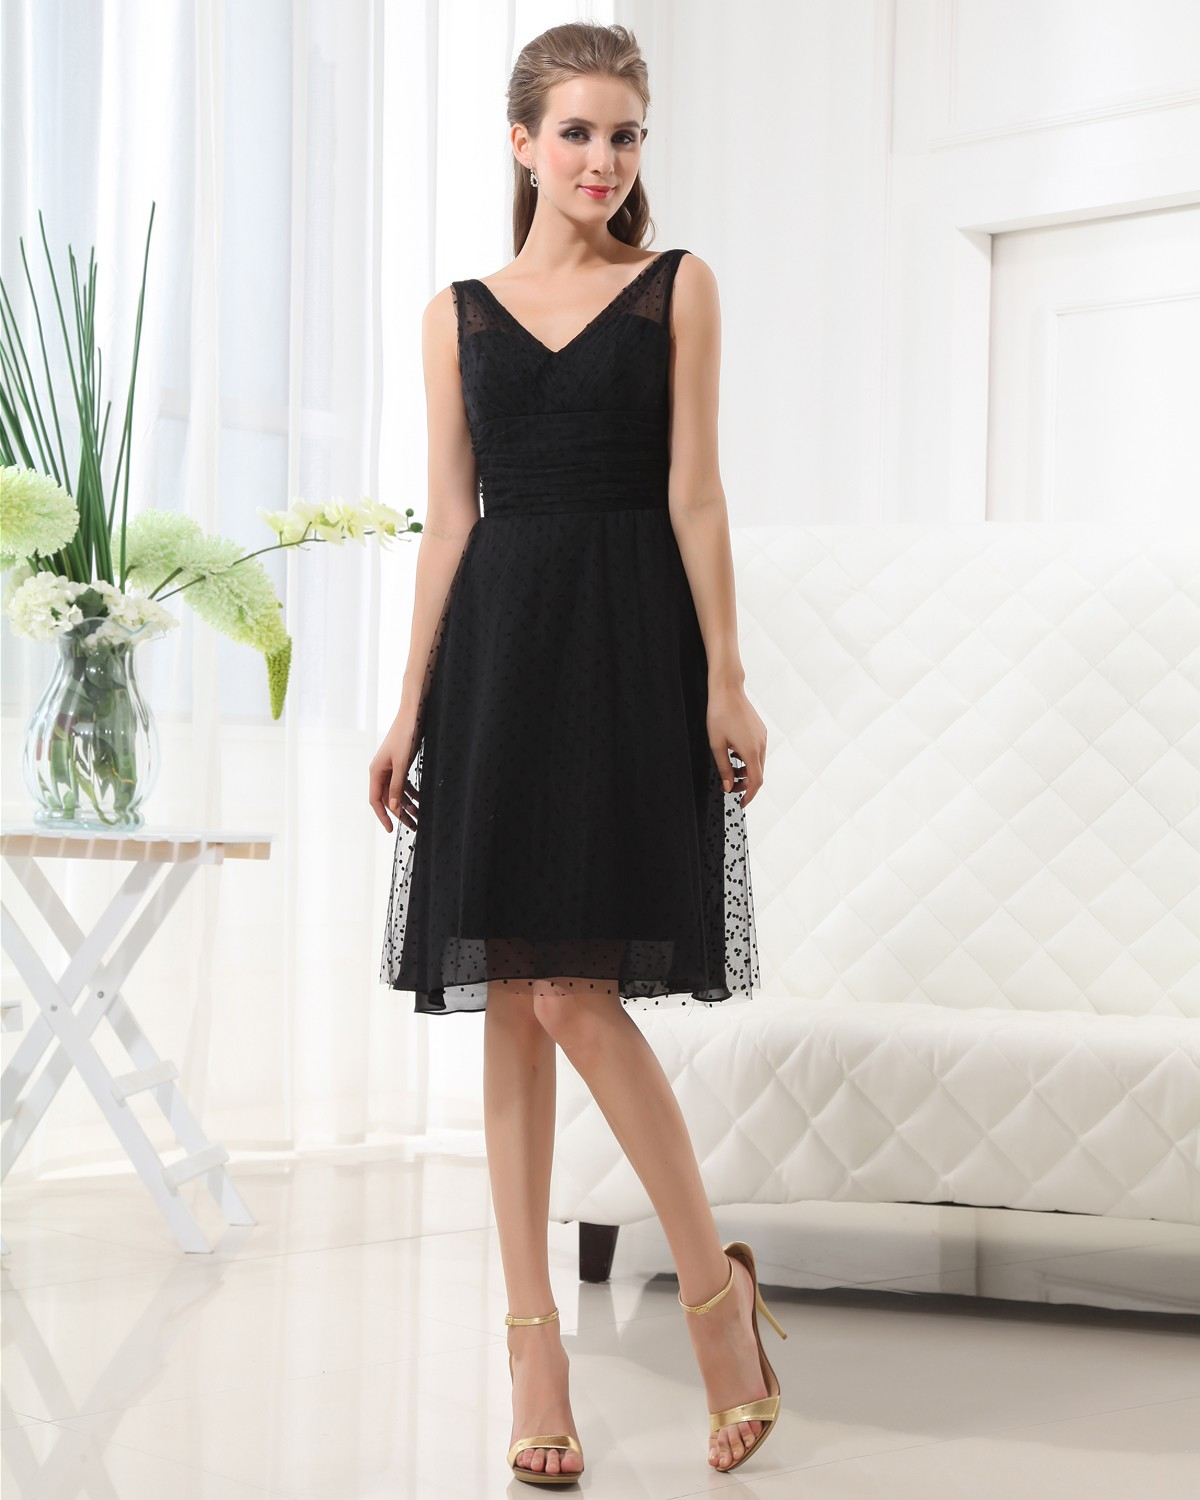 Uk black wedding guest dresses 2016 bridal wedding ideas for Images of black wedding dresses